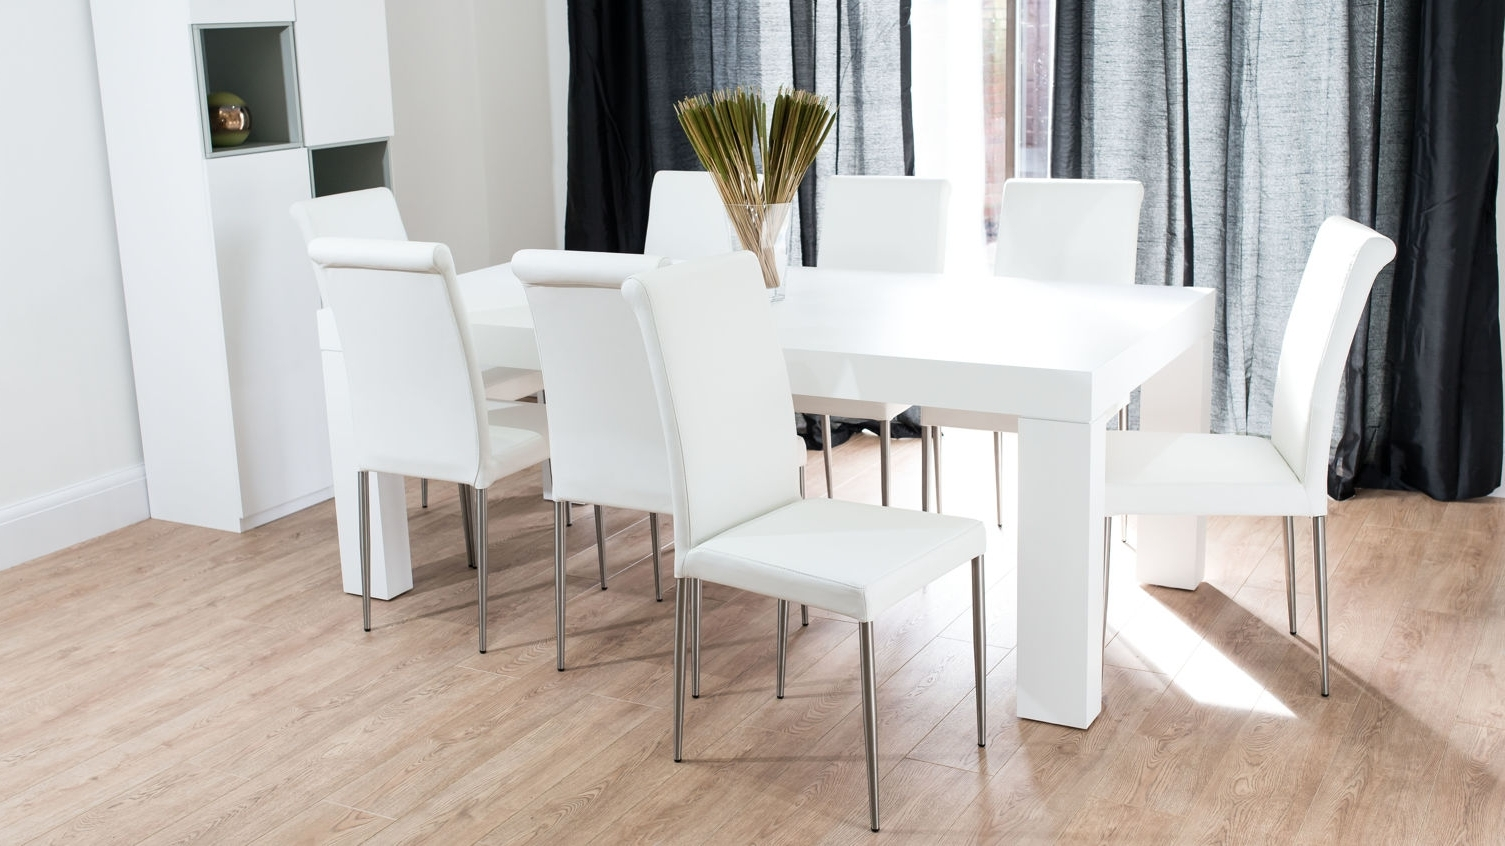 Well Known Oak Wood Dining Table In White Color Feature Clear Glass Vase And In White Gloss And Glass Dining Tables (View 17 of 25)